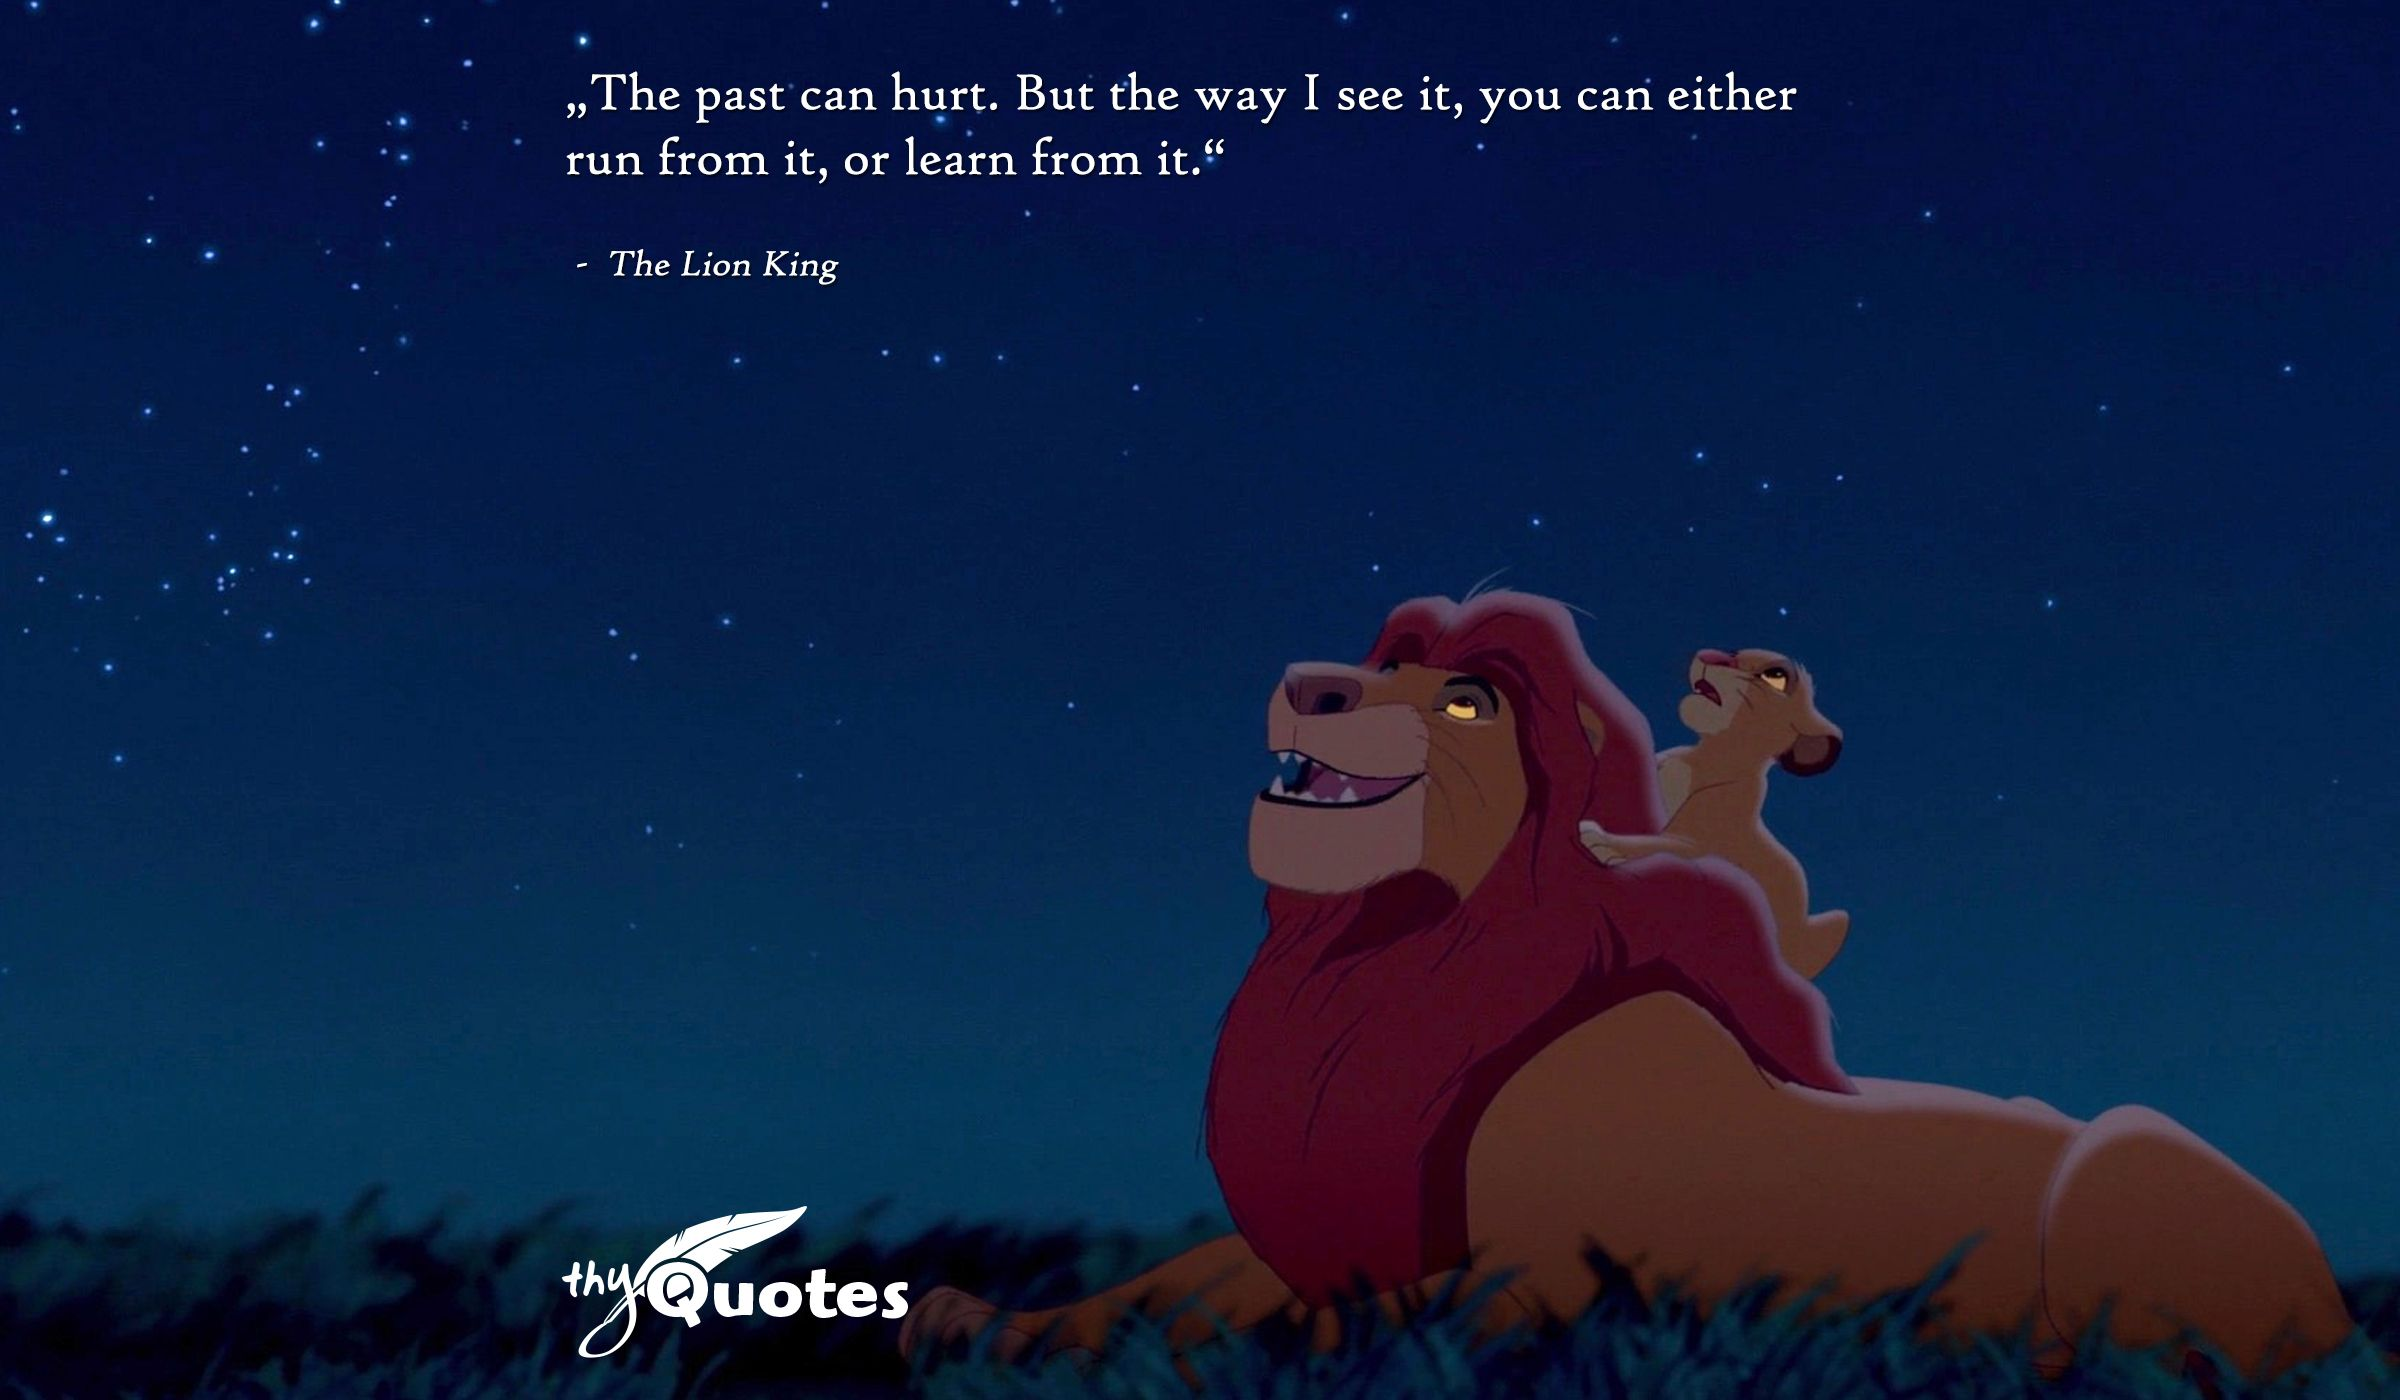 The Past Can Hurt But The Way I See It You Can Either Run From It Or Learn From It The Lion King Lion King Disney Quotes Lion King Quotes